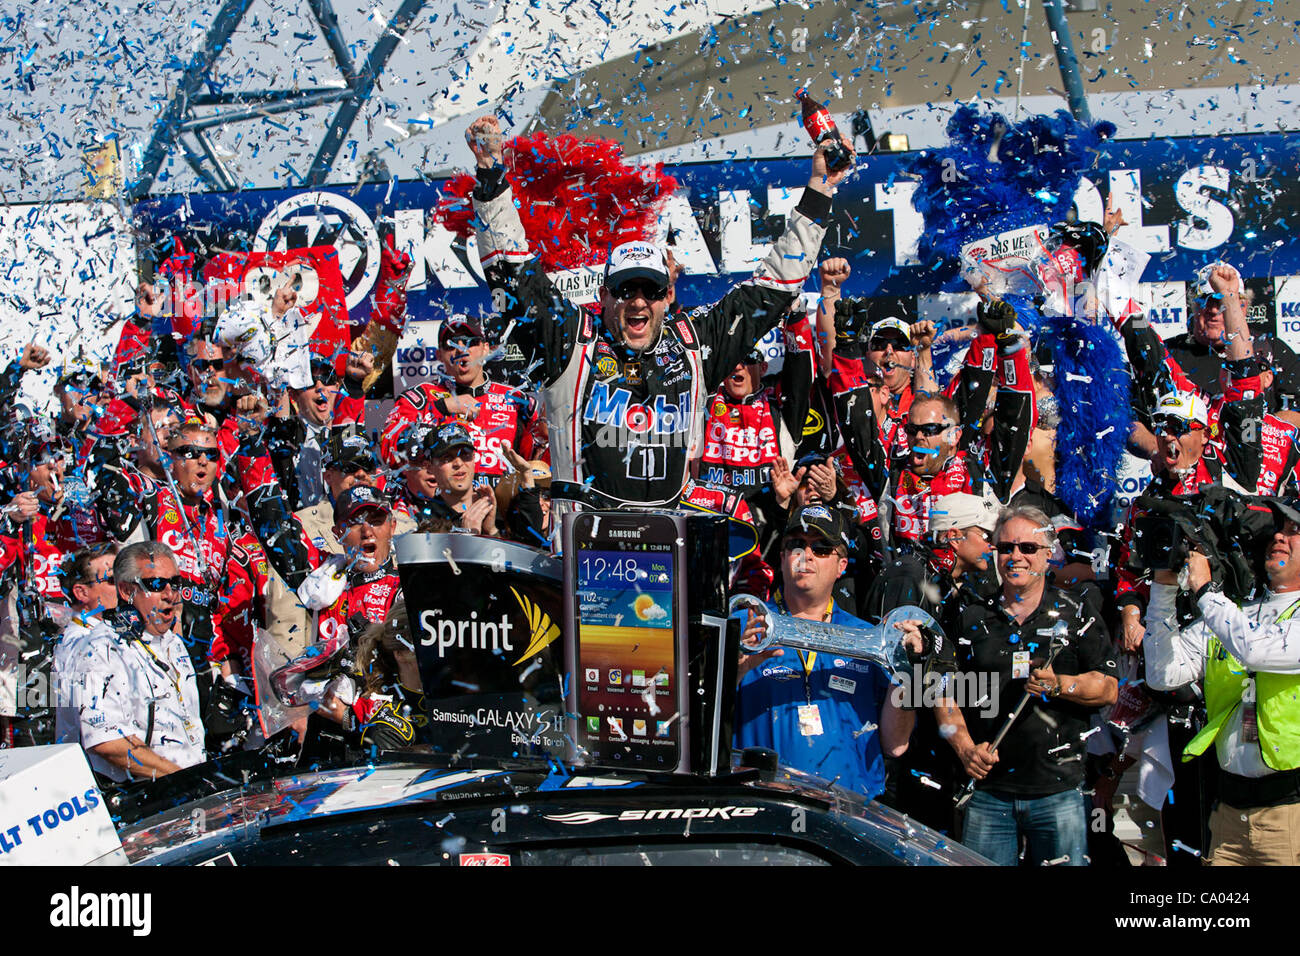 March 11, 2012 - Las Vegas, Nevada, U.S - TONY STEWART, driver of the (14) Mobil 1 / Office Depot Chevrolet Impala, Stock Photo